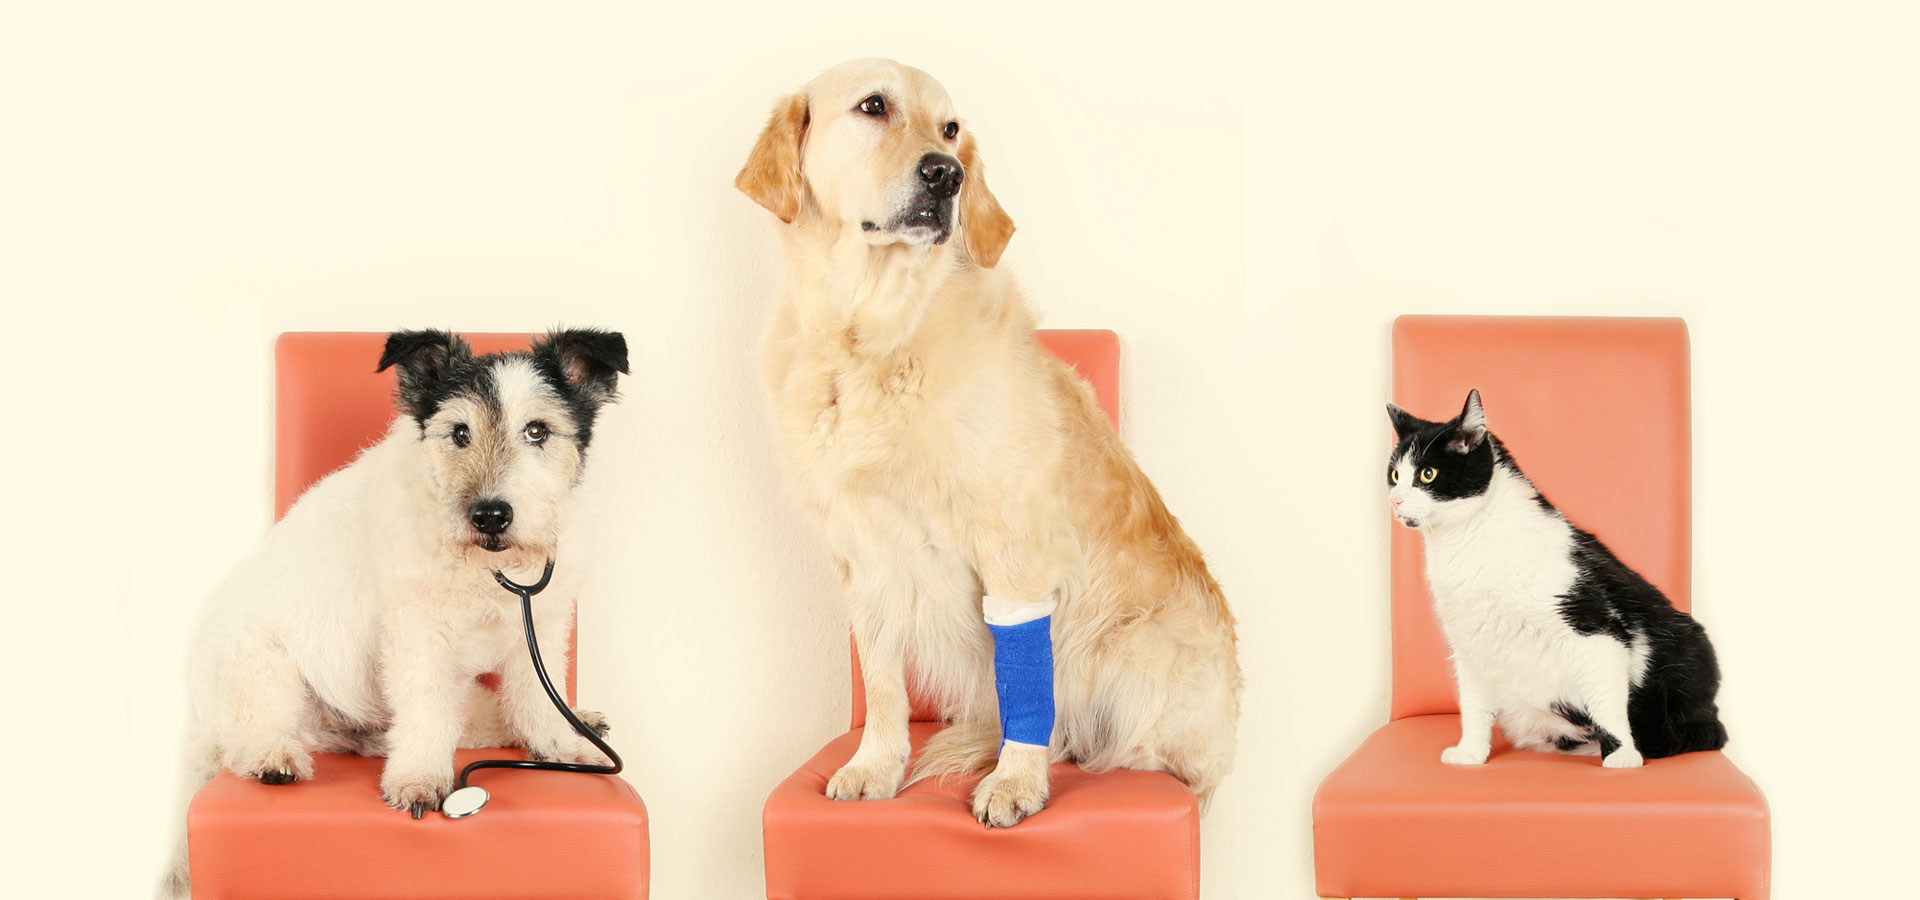 Minimally Invasive Surgery for Dogs and Cats - CARE Surgery Center